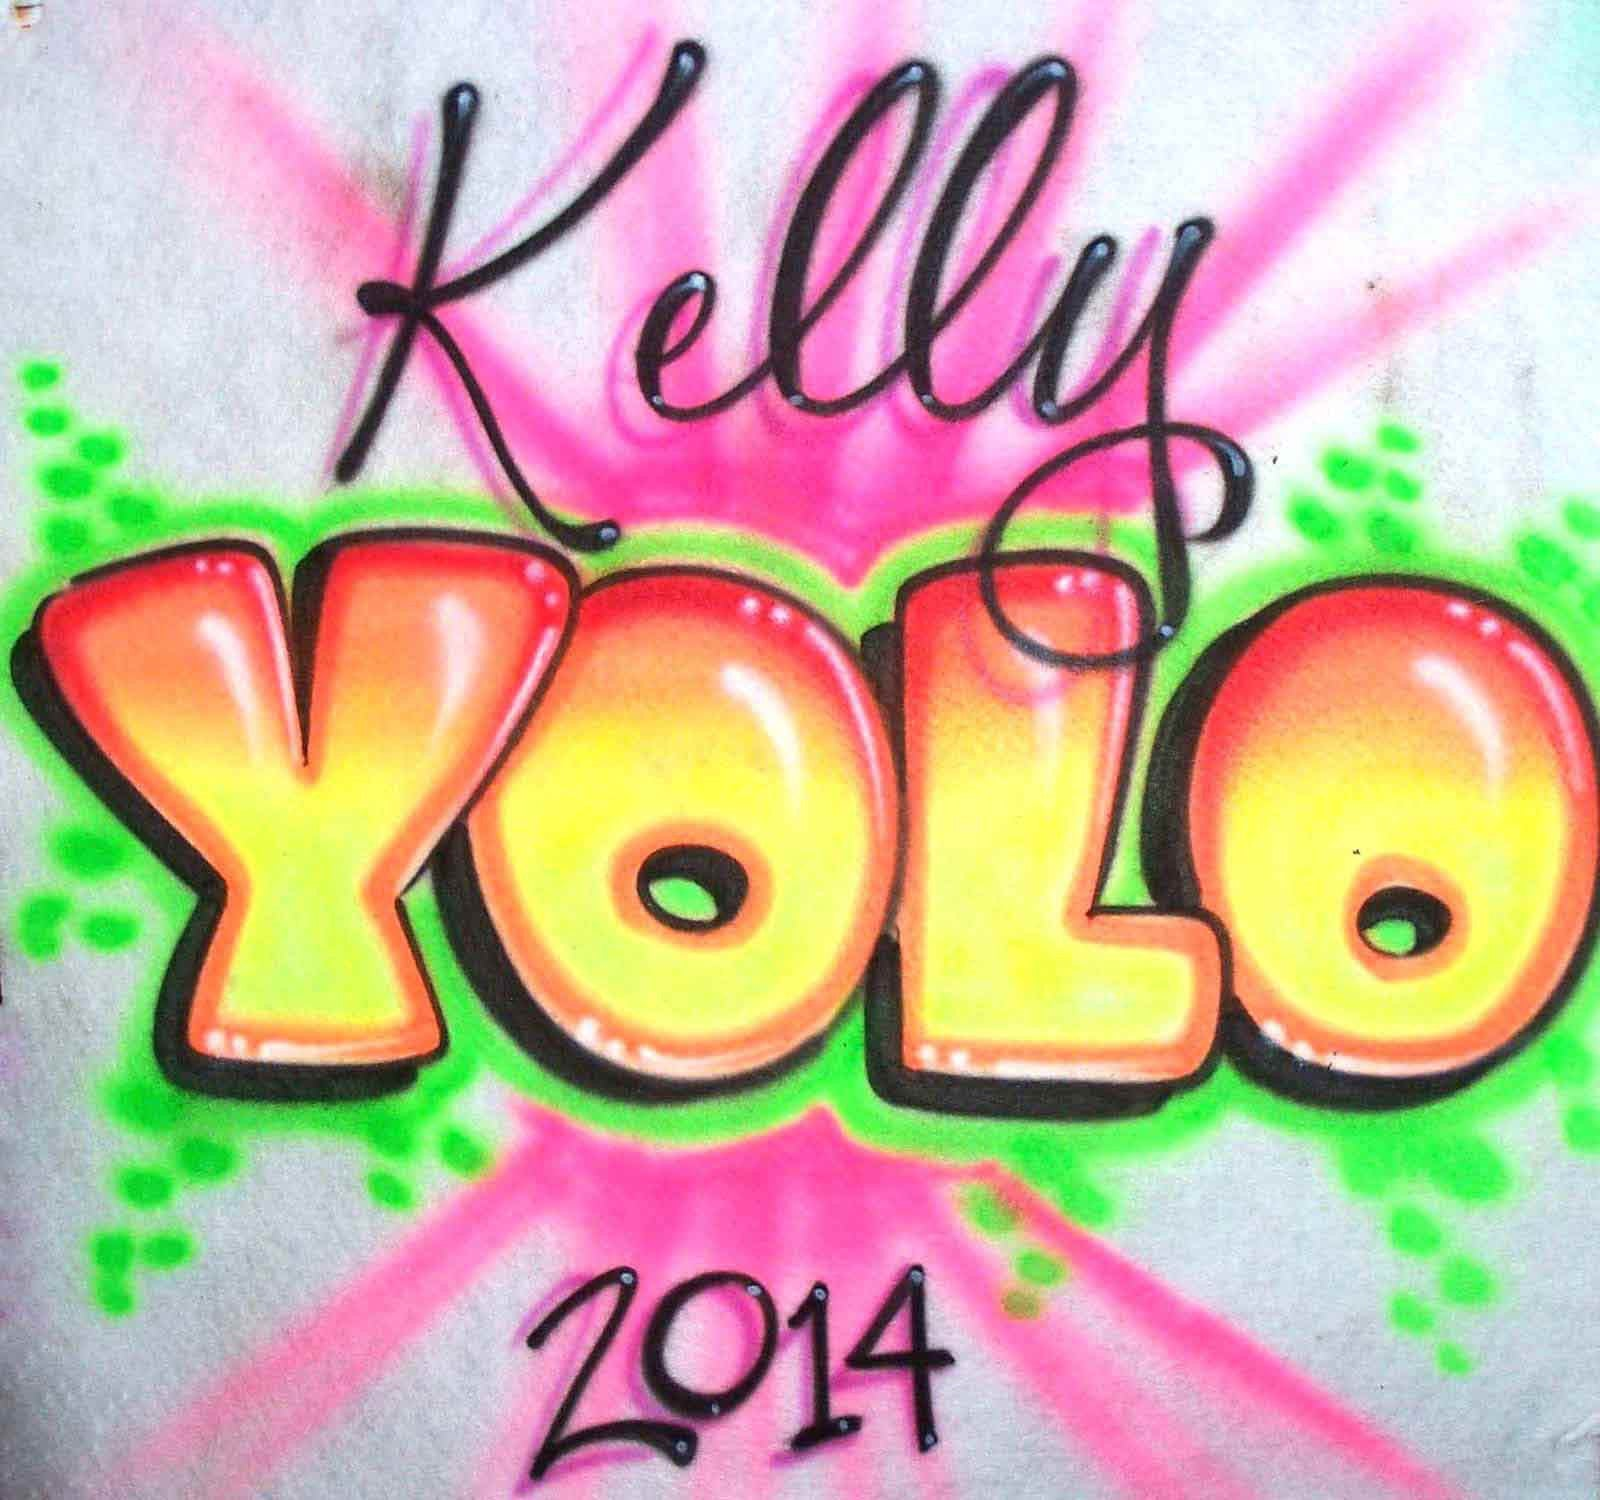 YOLO airbrushed Personalized Shirt